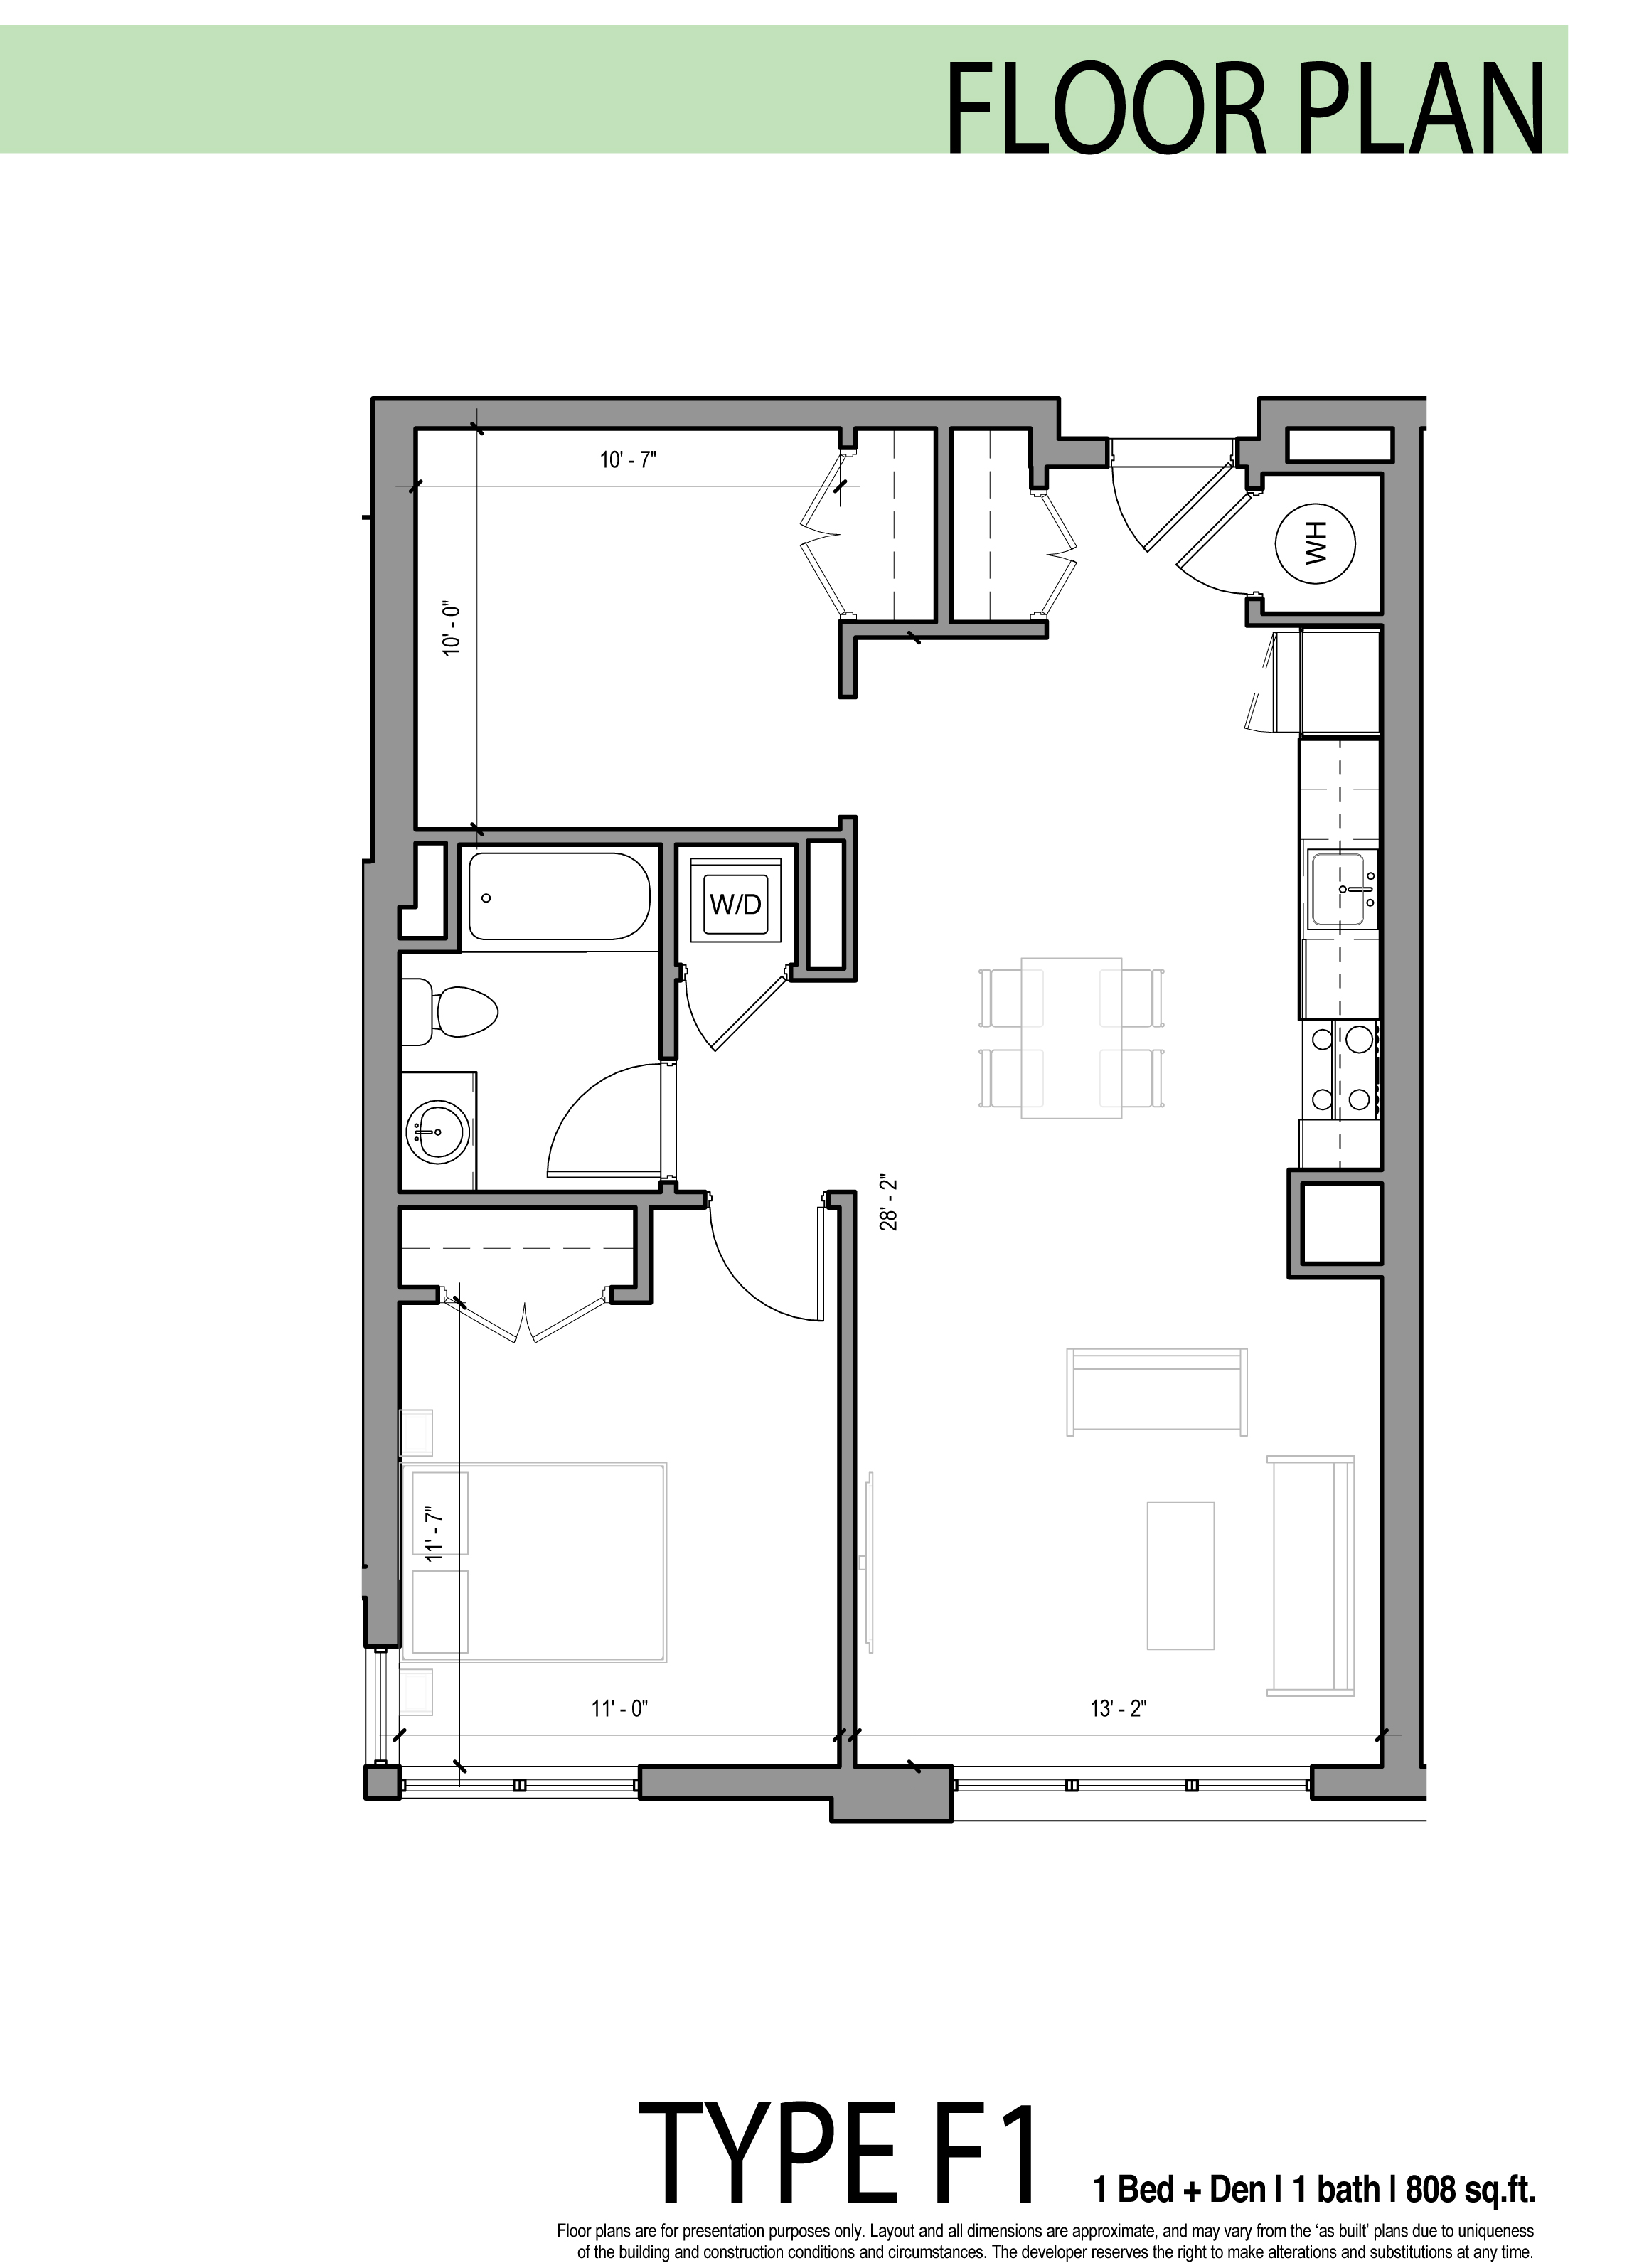 Edge allston floor plans layouts at the edge luxury building for Floor plans for